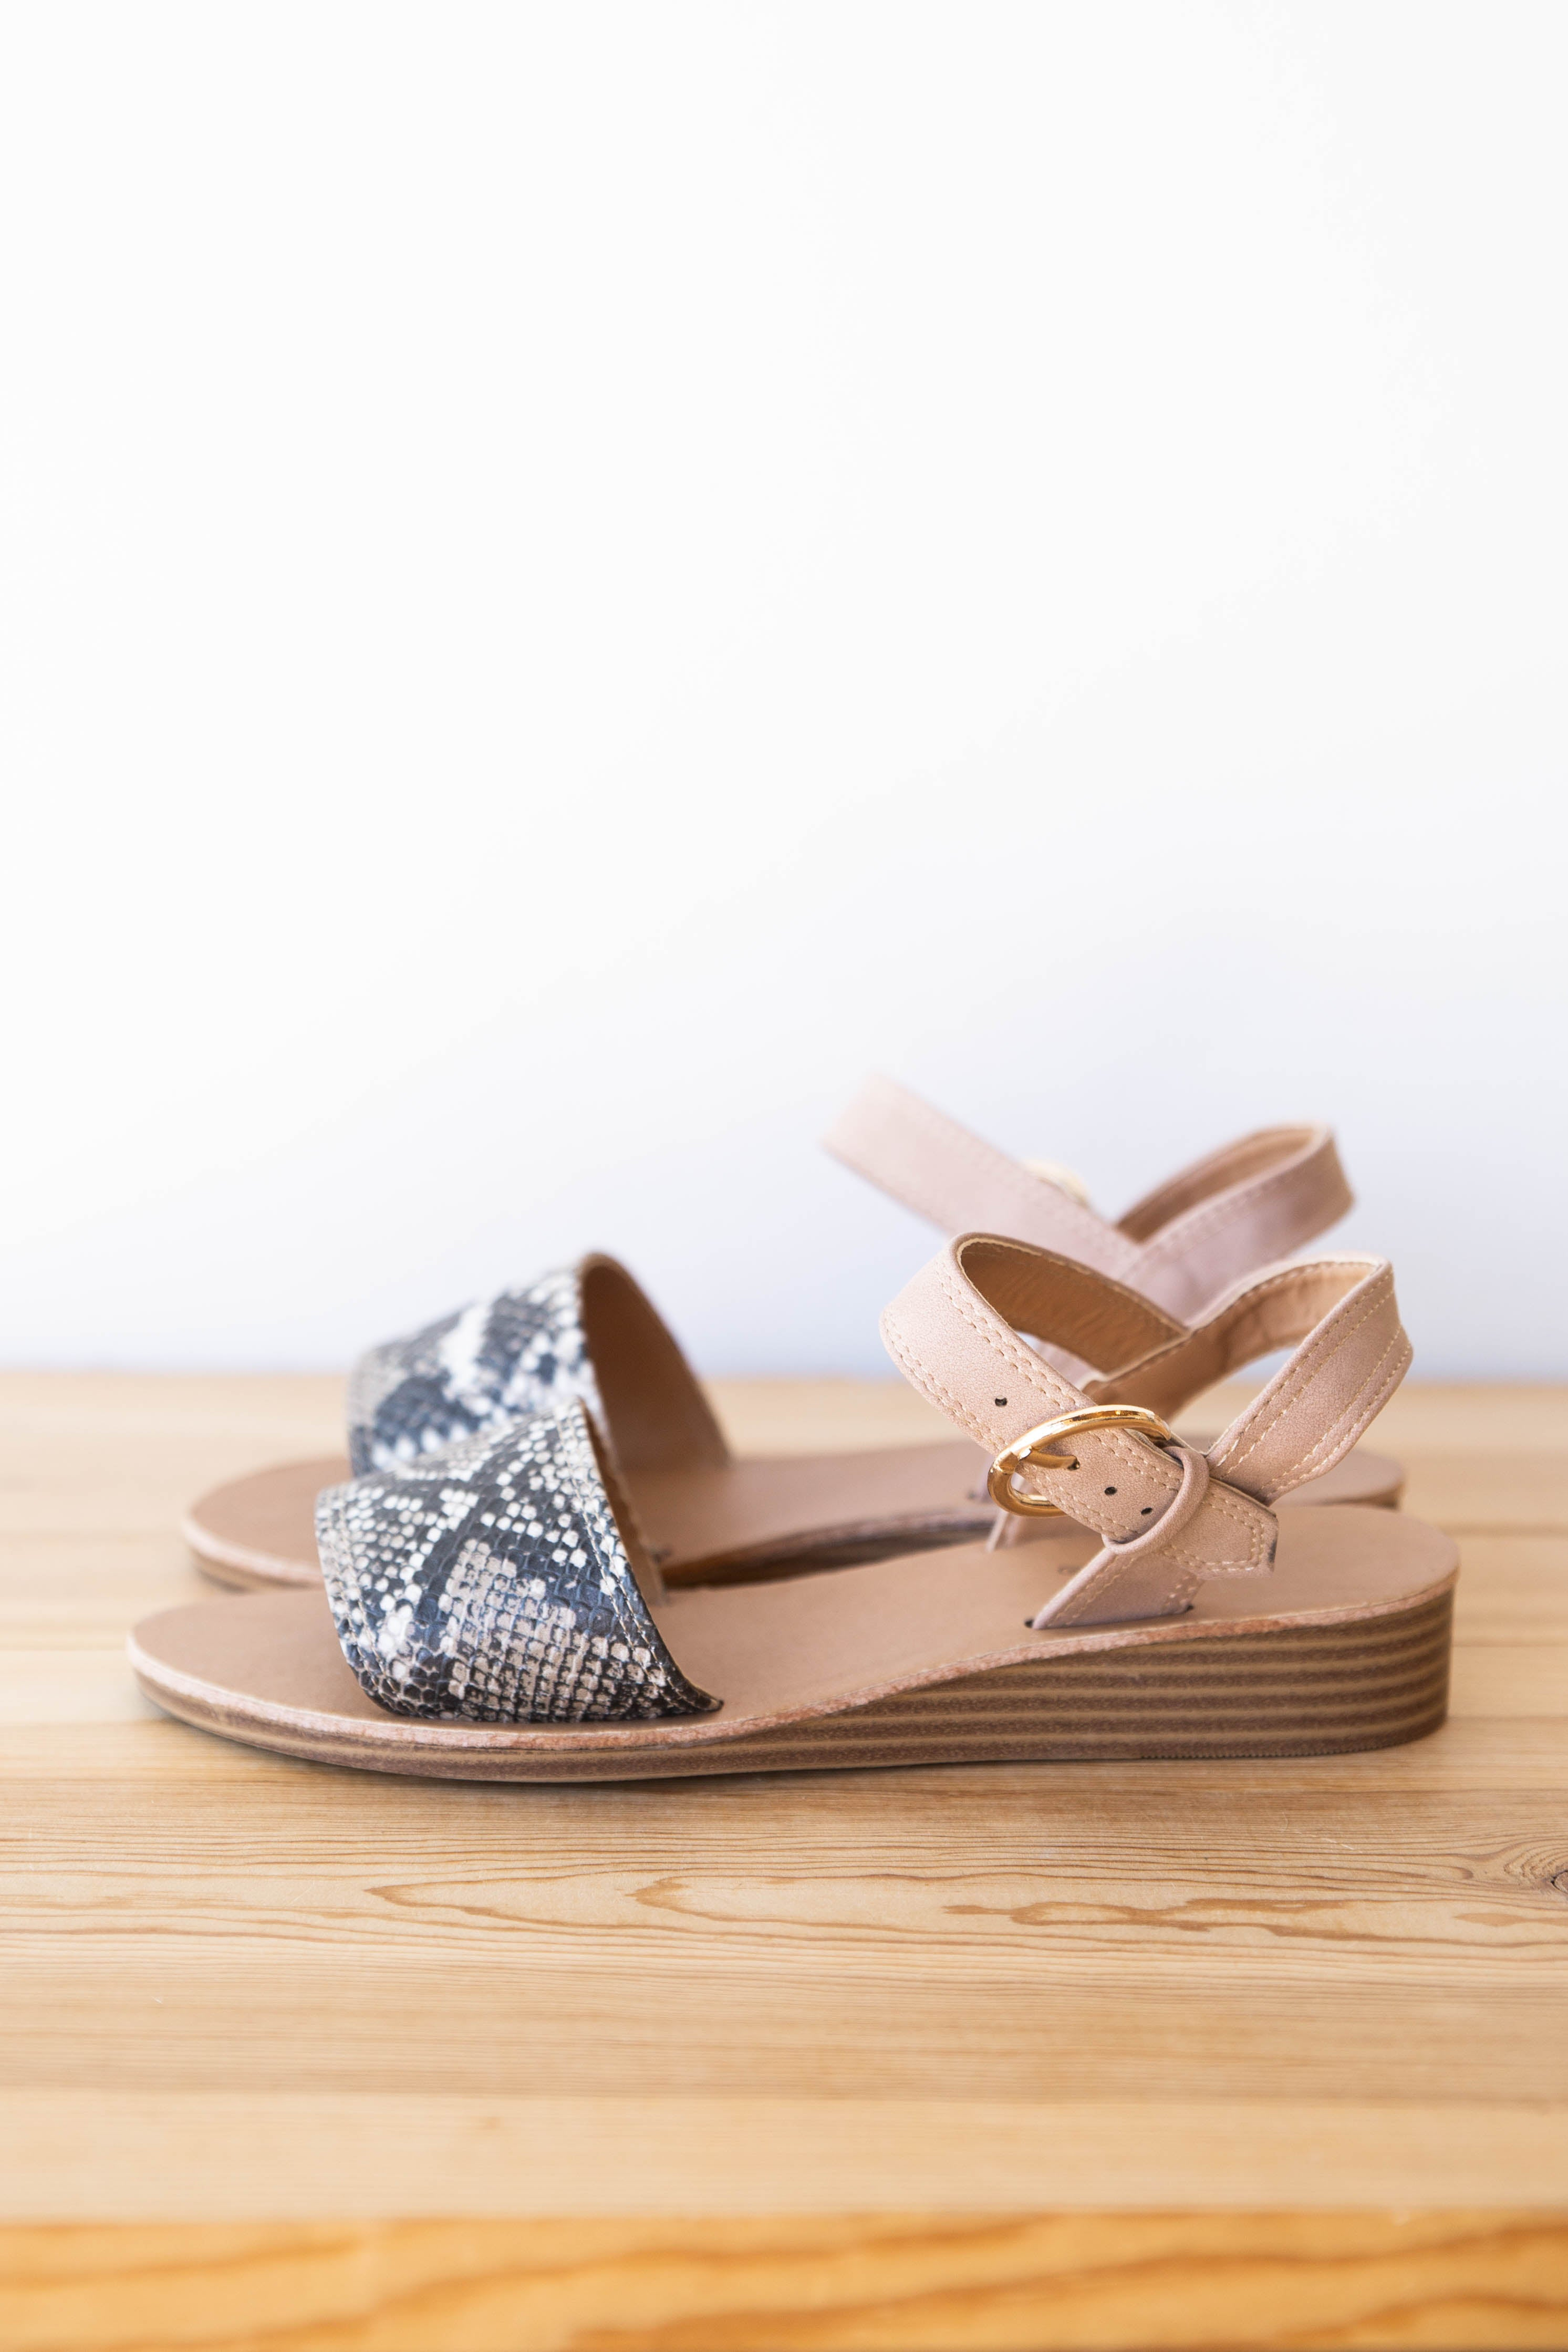 [shop name], picture perfect sandal